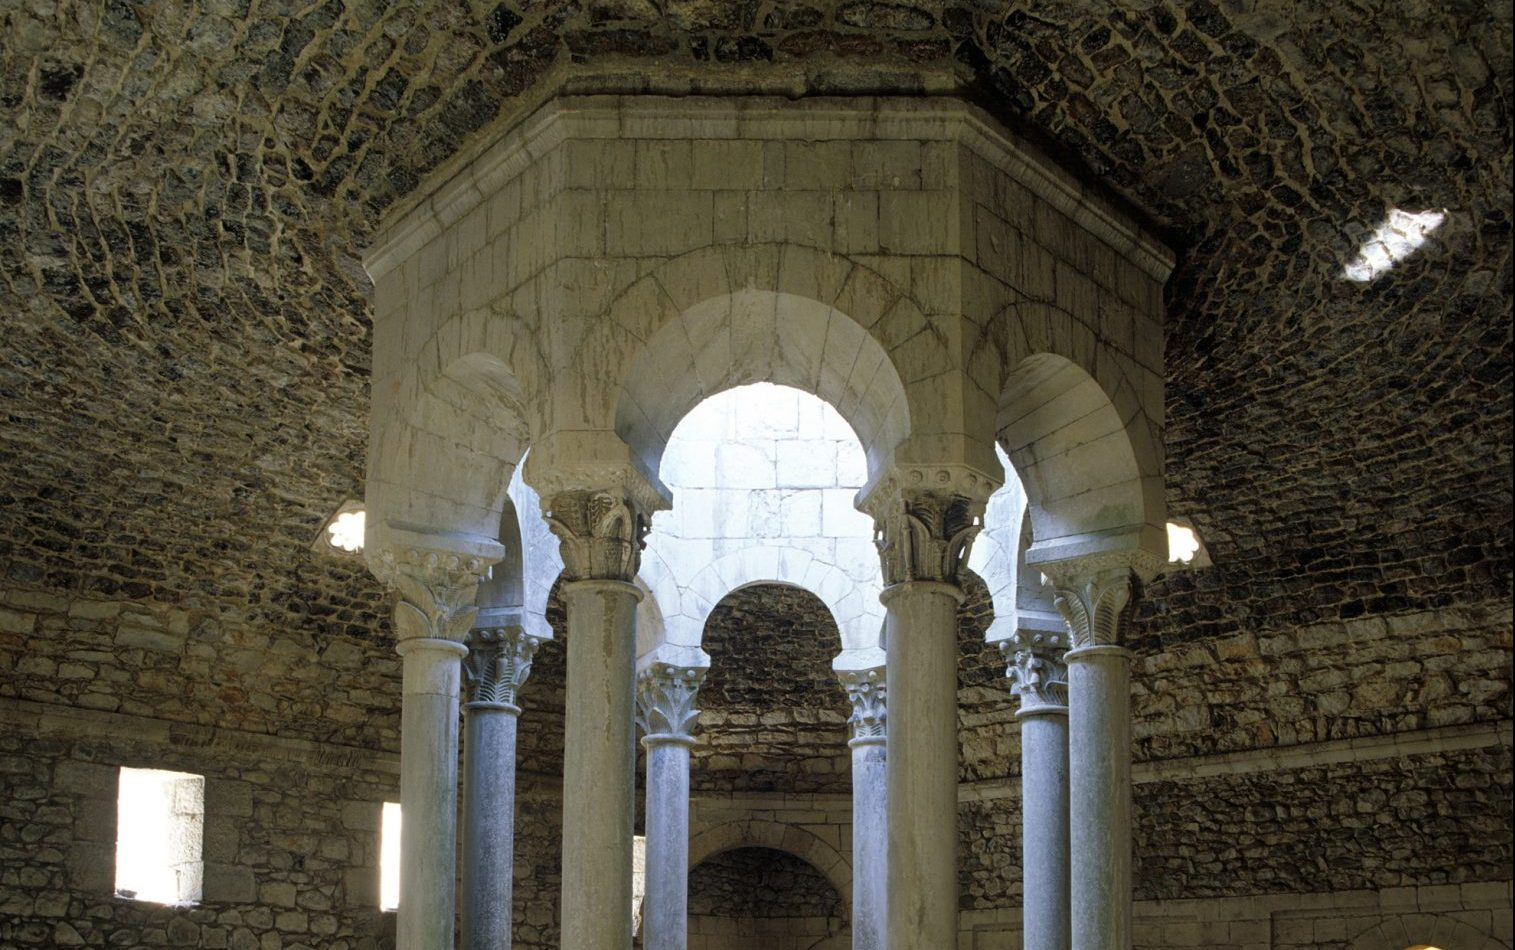 Arab Baths of Girona